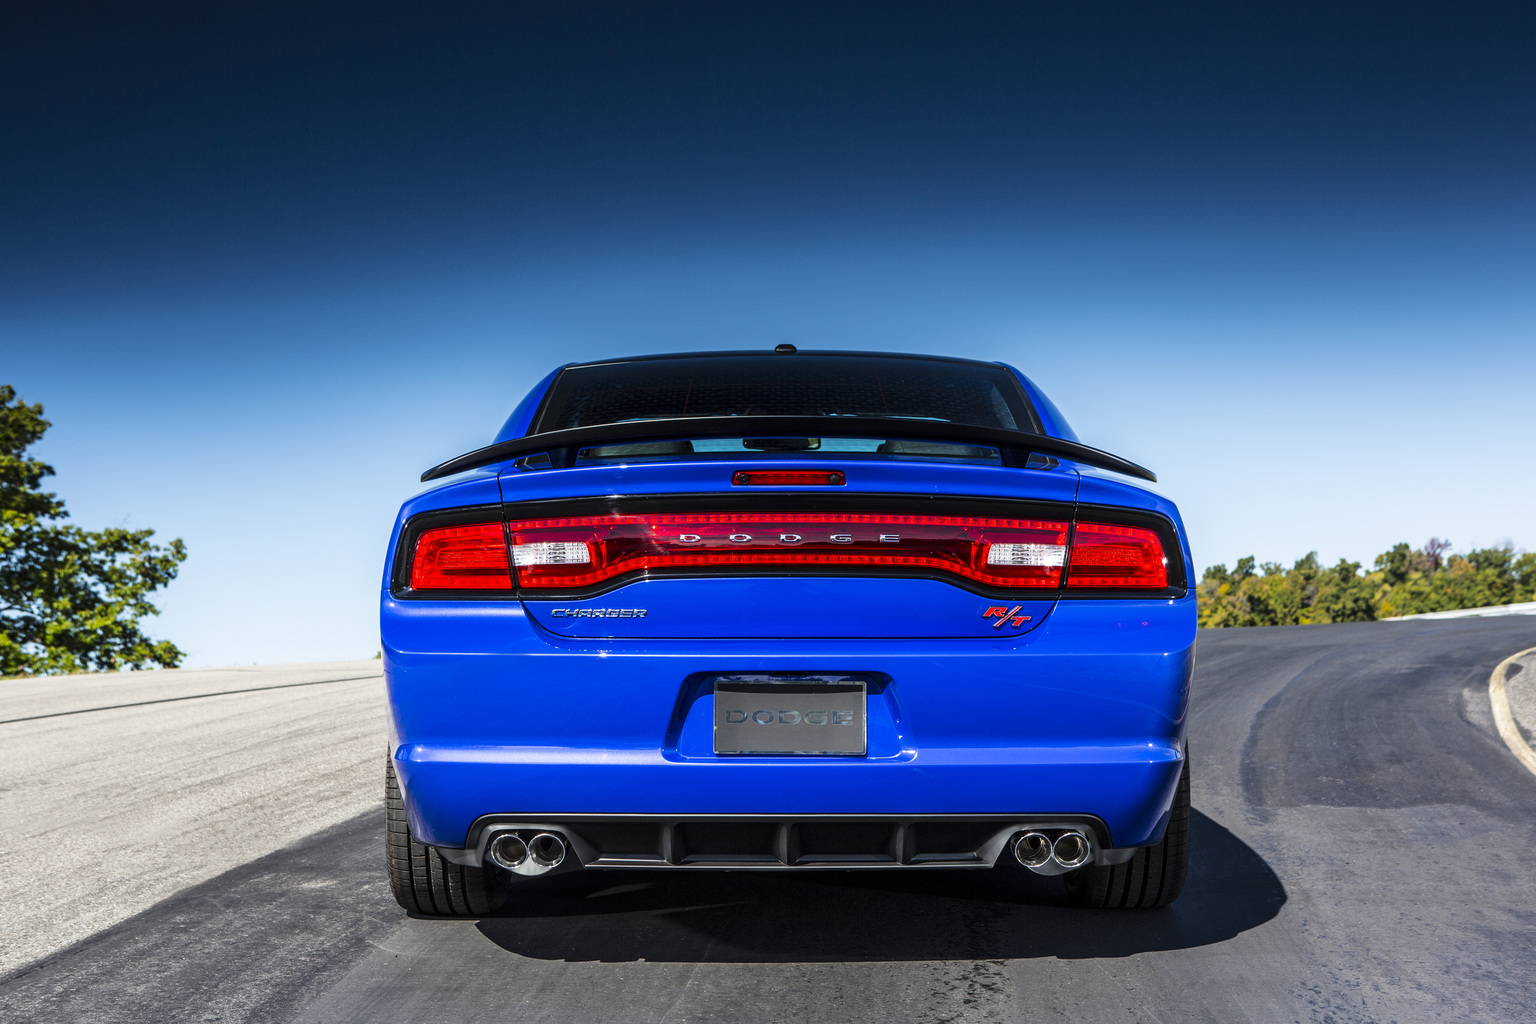 in detail - Dodge Charger 2013 Rt